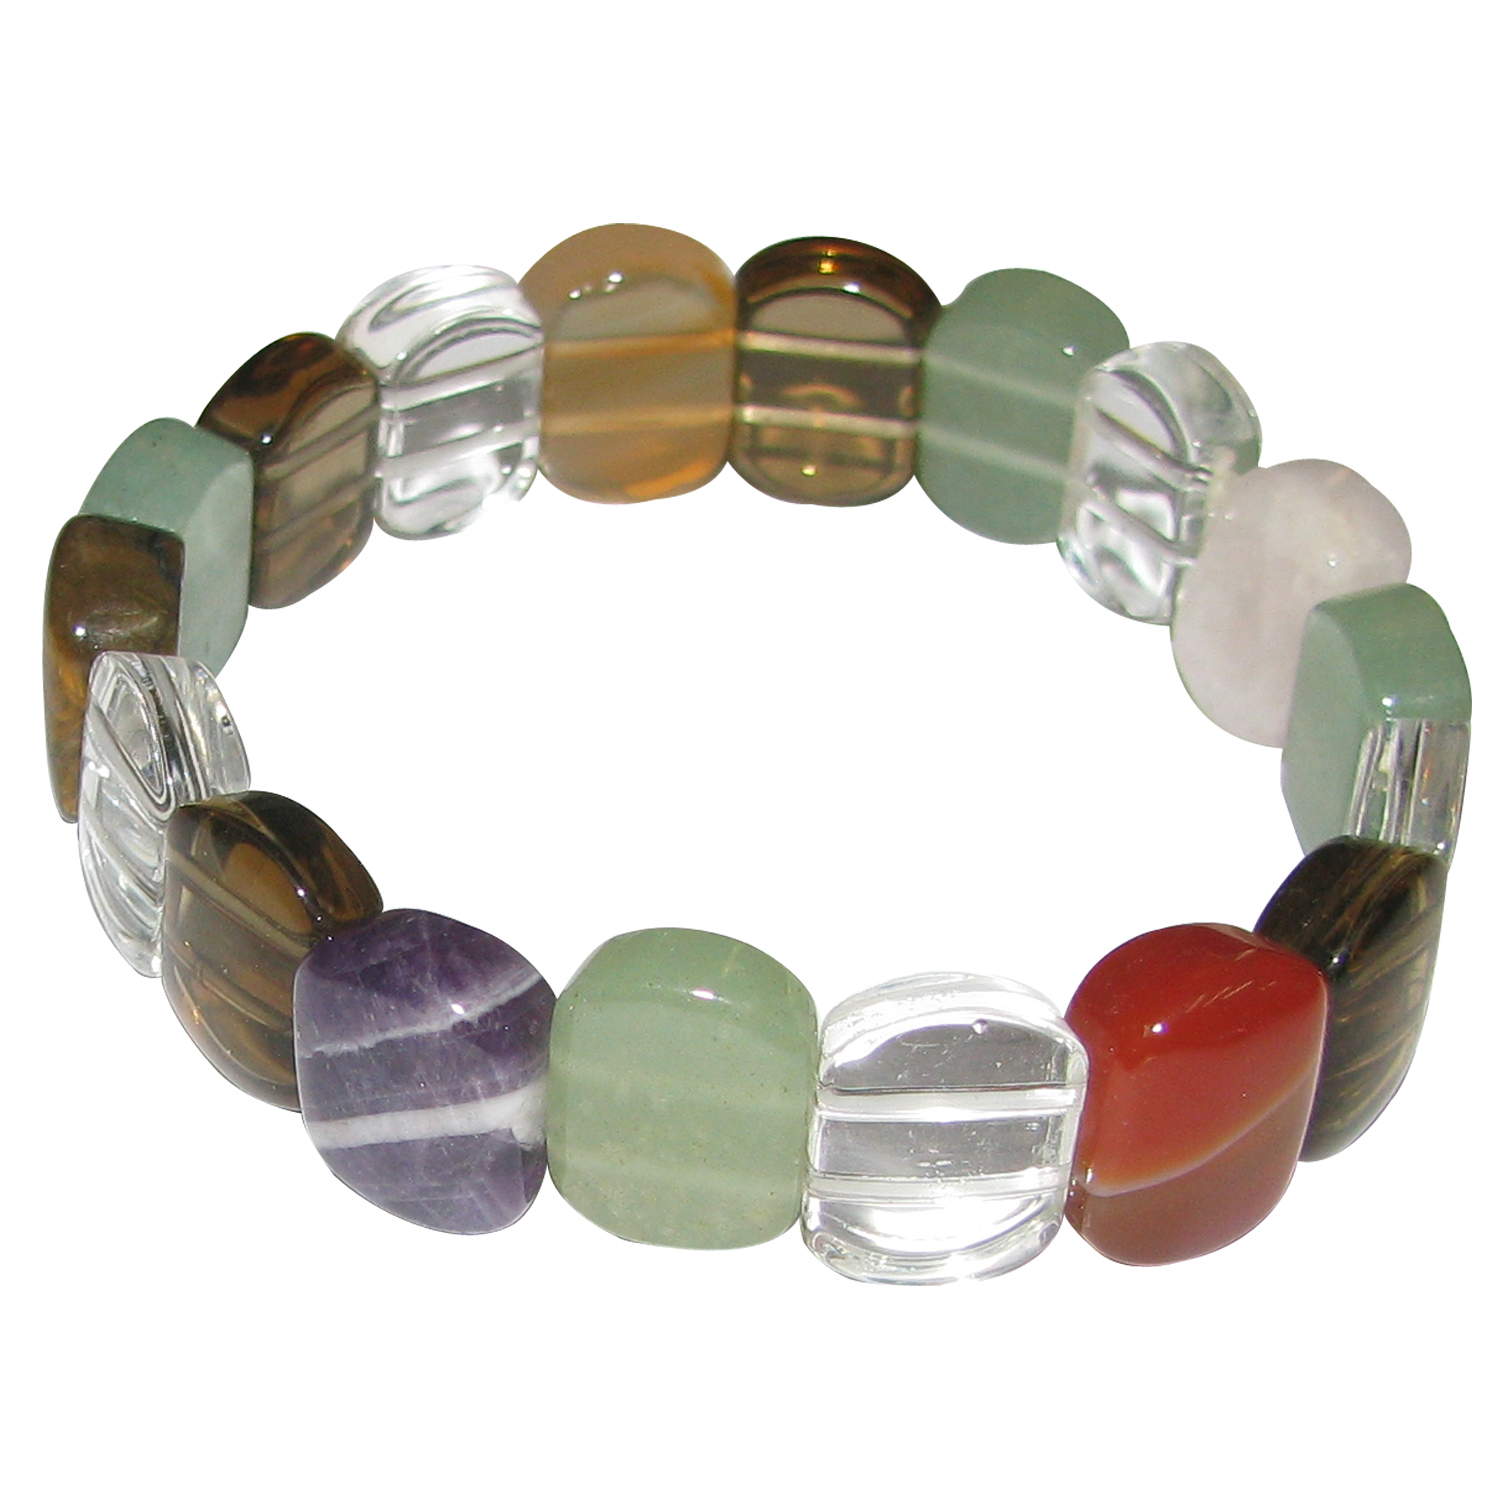 healing crystal hematite for magnetic product hand crafted bracelet men women and